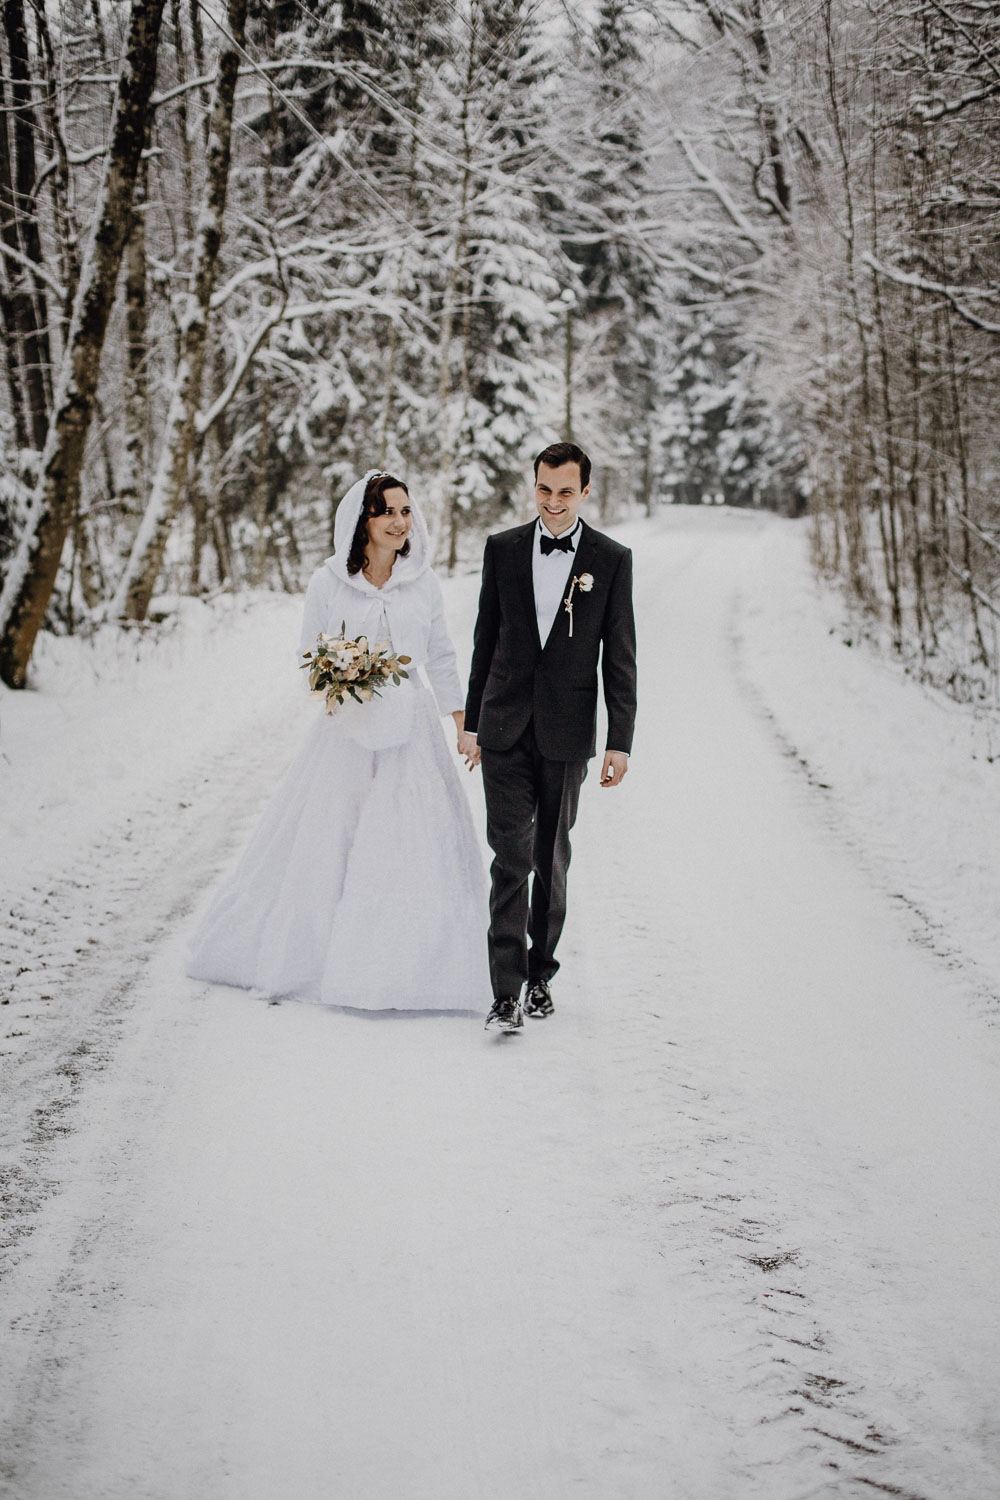 raissa simon photography destination wedding munich bayrischer wald winter snow 023 - Christine + Benjamin